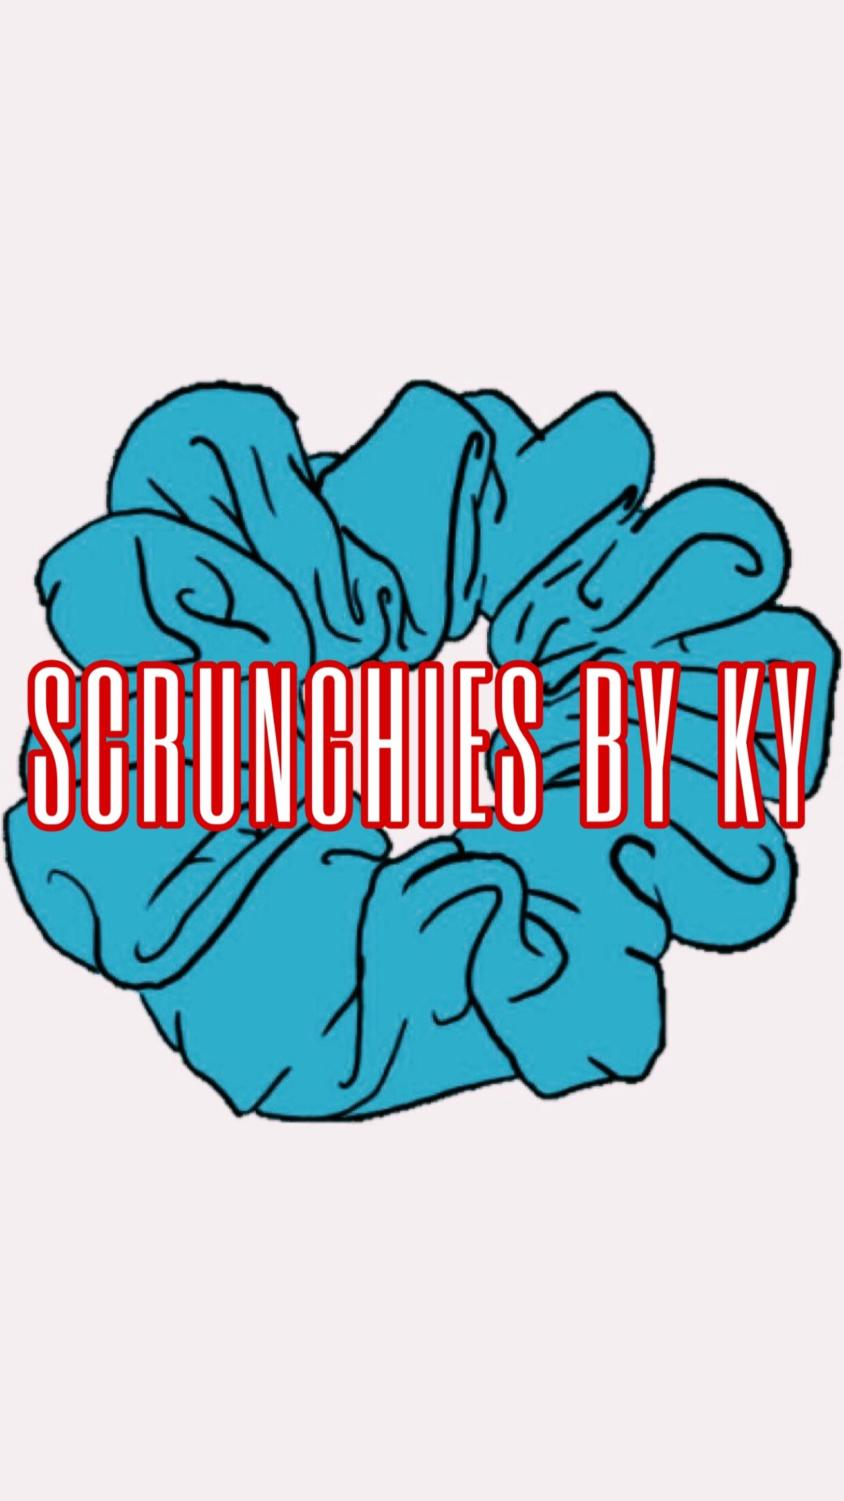 Kyah McKinney's (11) logo for her business: Scrunchies By Ky. McKinney sews scrunchies and sells them at a price of $1 for 3 and $2 for 5.